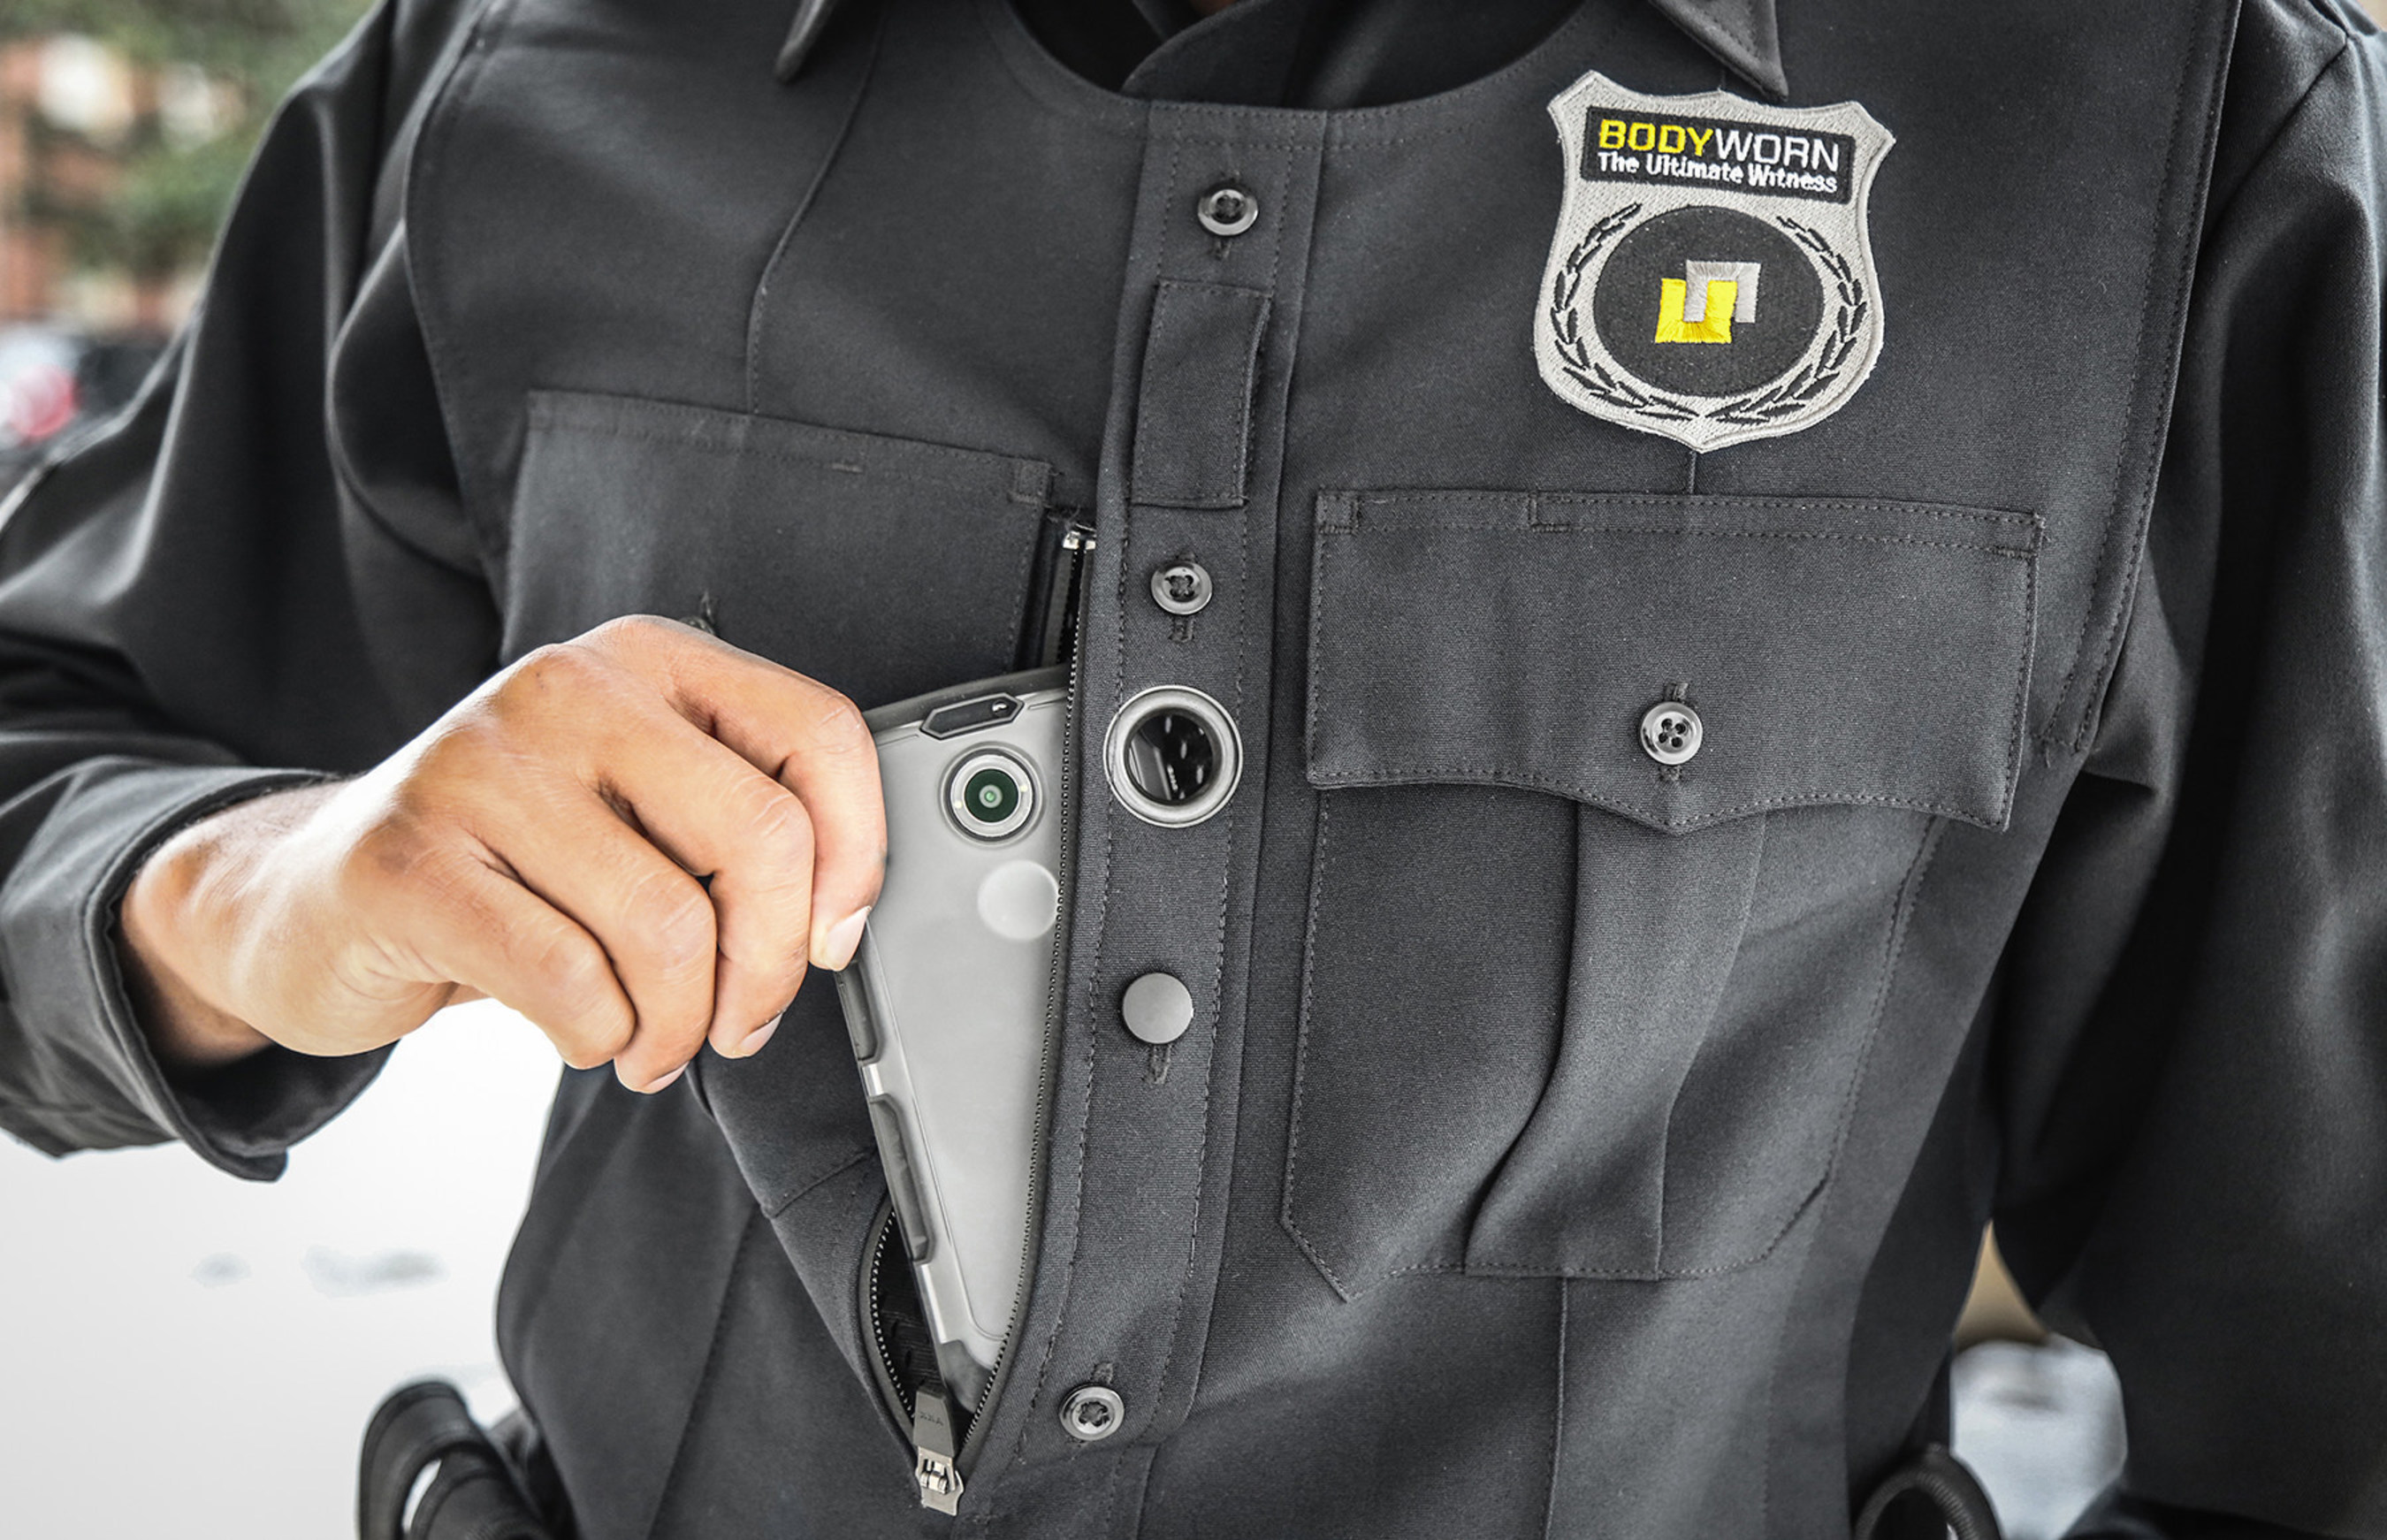 Lilburn and Marietta Police Departments Choose BodyWorn As Their Body-worn Camera Solution